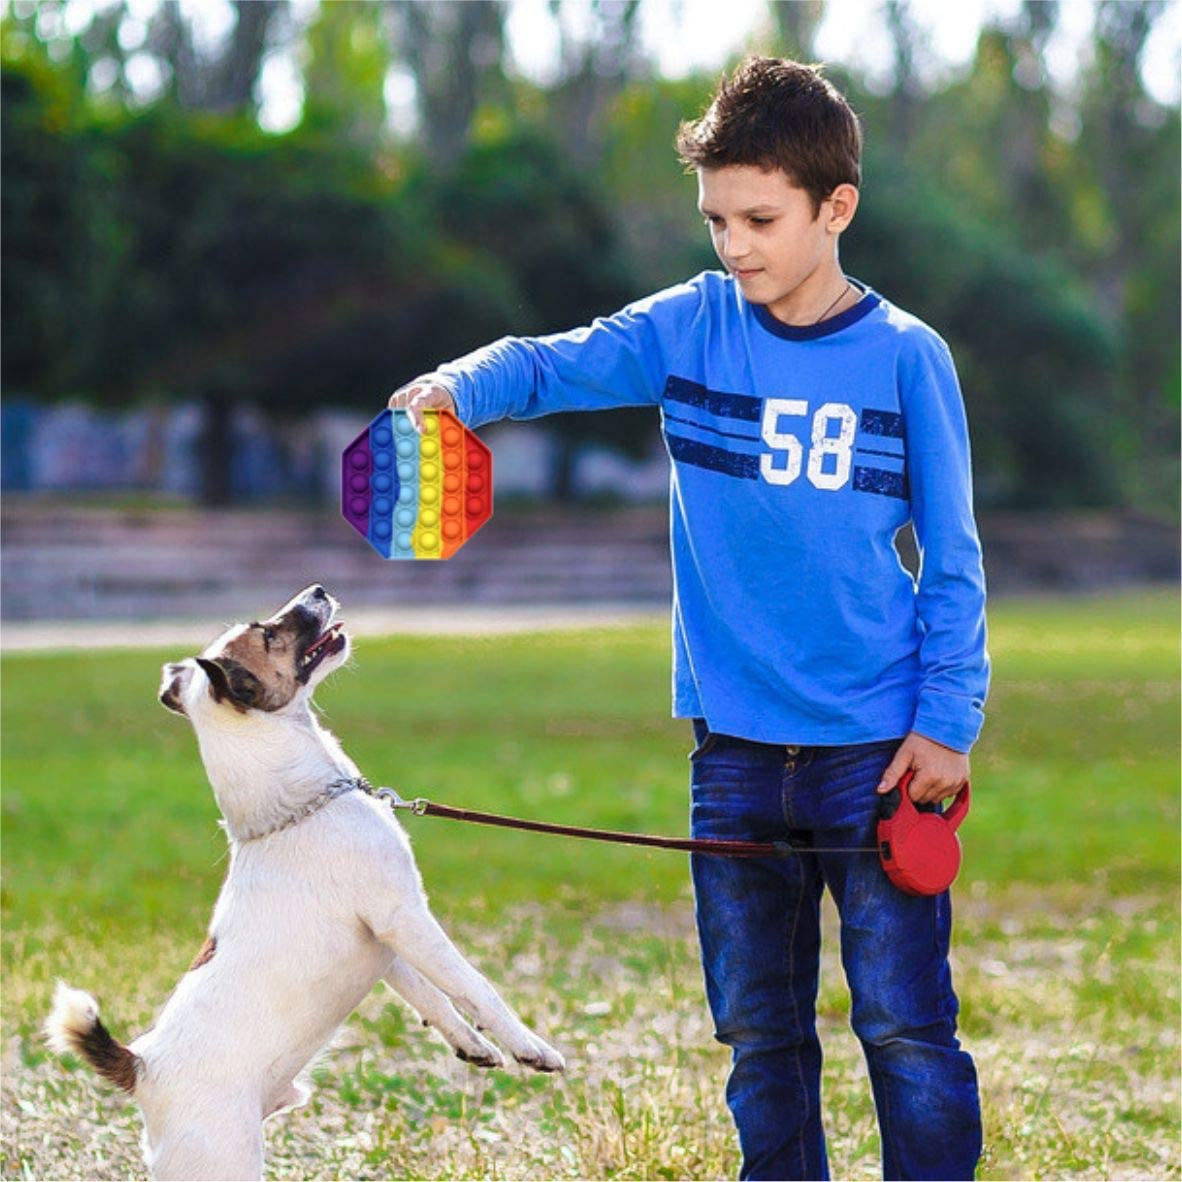 Autism Special Needs Silicone Stress Reliever Push pop Rainbow Bubble Fidget Sensory Toy School Learning Game Crafts for Kids Adults LEERUI Bubble Popper Squeeze Sensory Toys